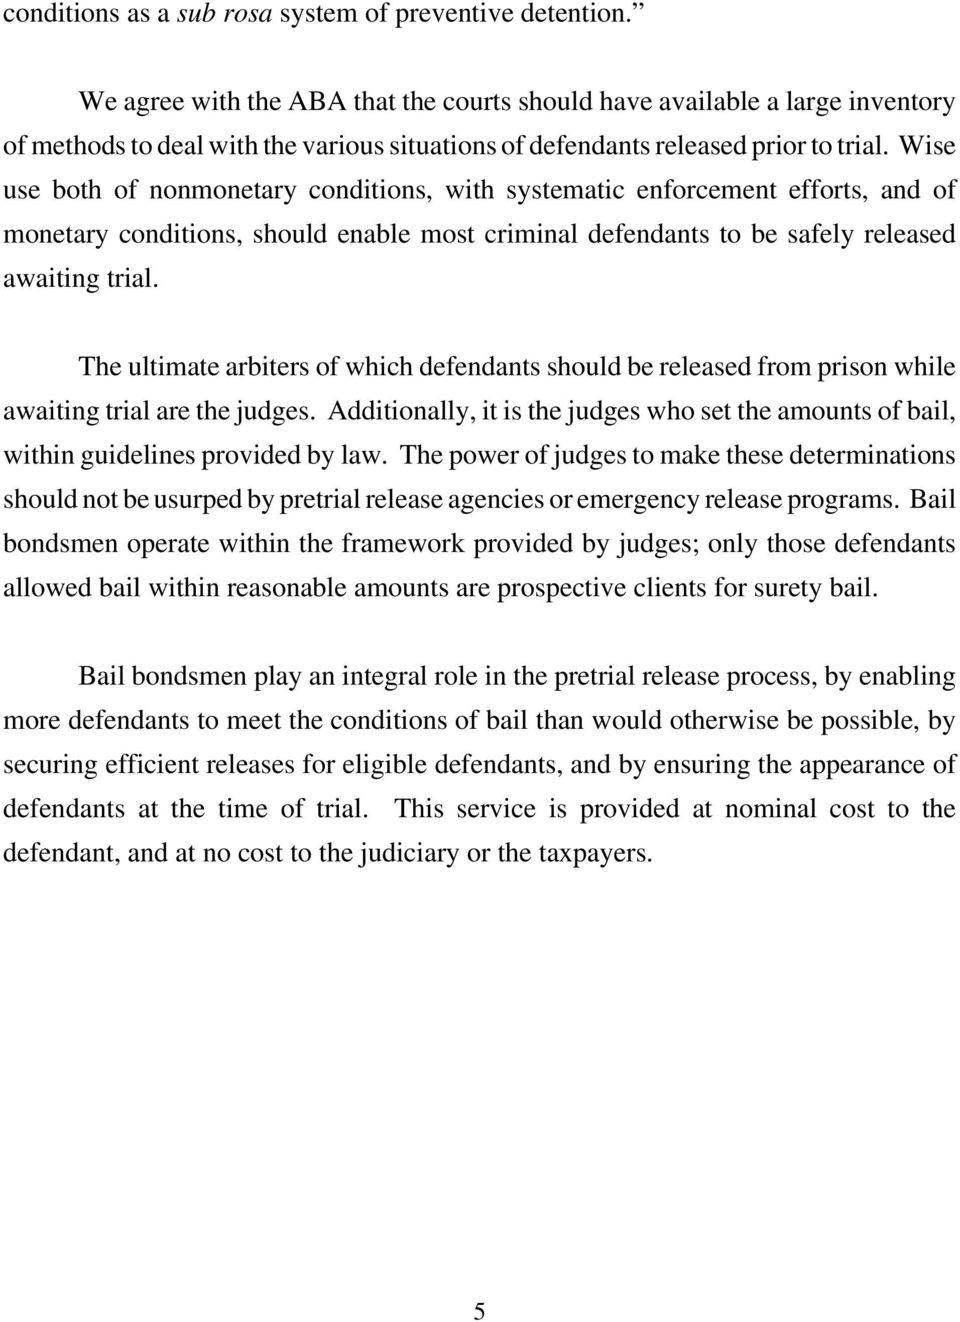 Wise use both of nonmonetary conditions, with systematic enforcement efforts, and of monetary conditions, should enable most criminal defendants to be safely released awaiting trial.